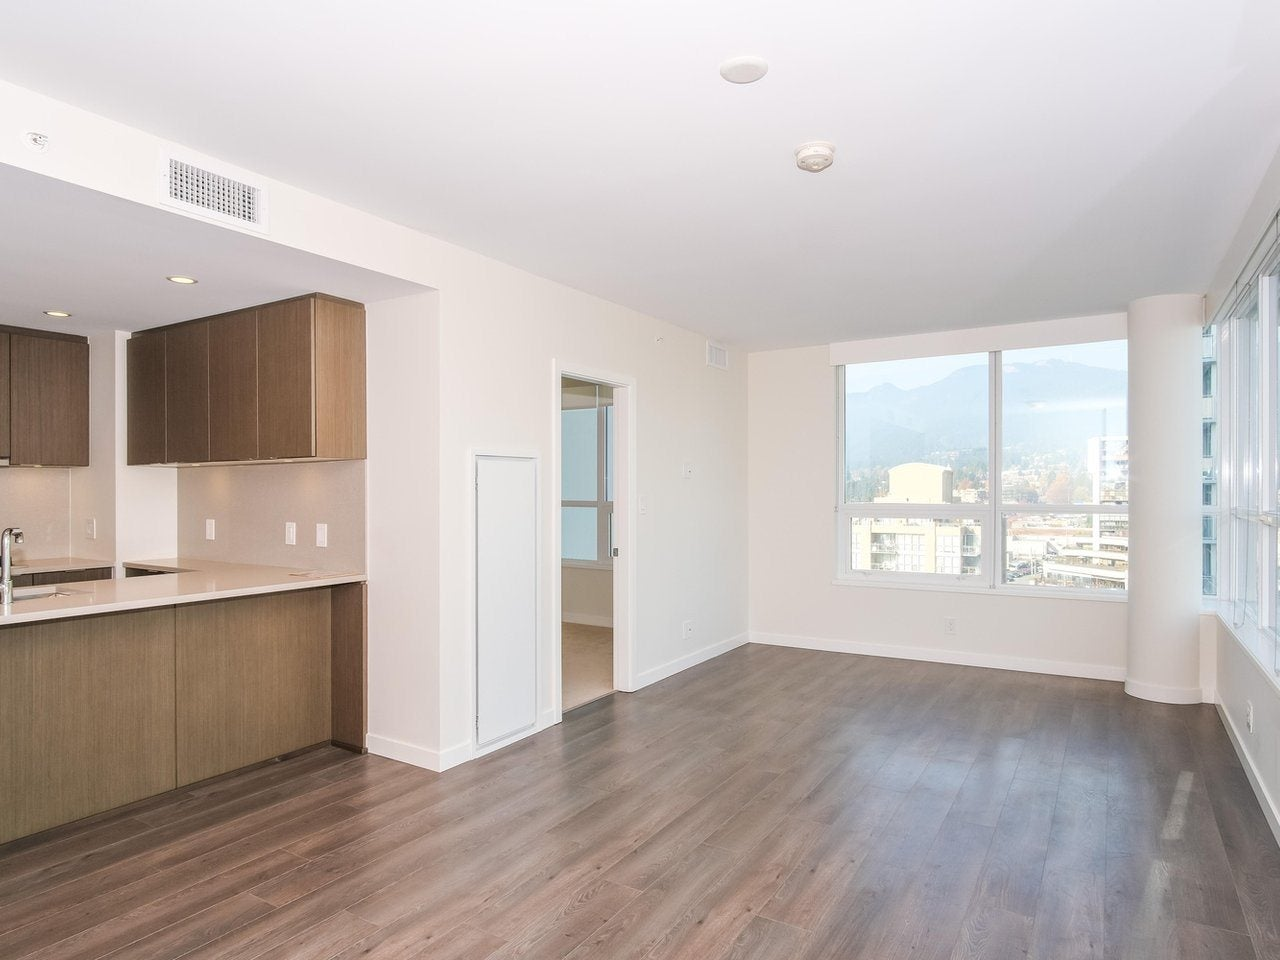 1002 112 E 13TH STREET - Central Lonsdale Apartment/Condo for sale, 2 Bedrooms (R2404786) - #2